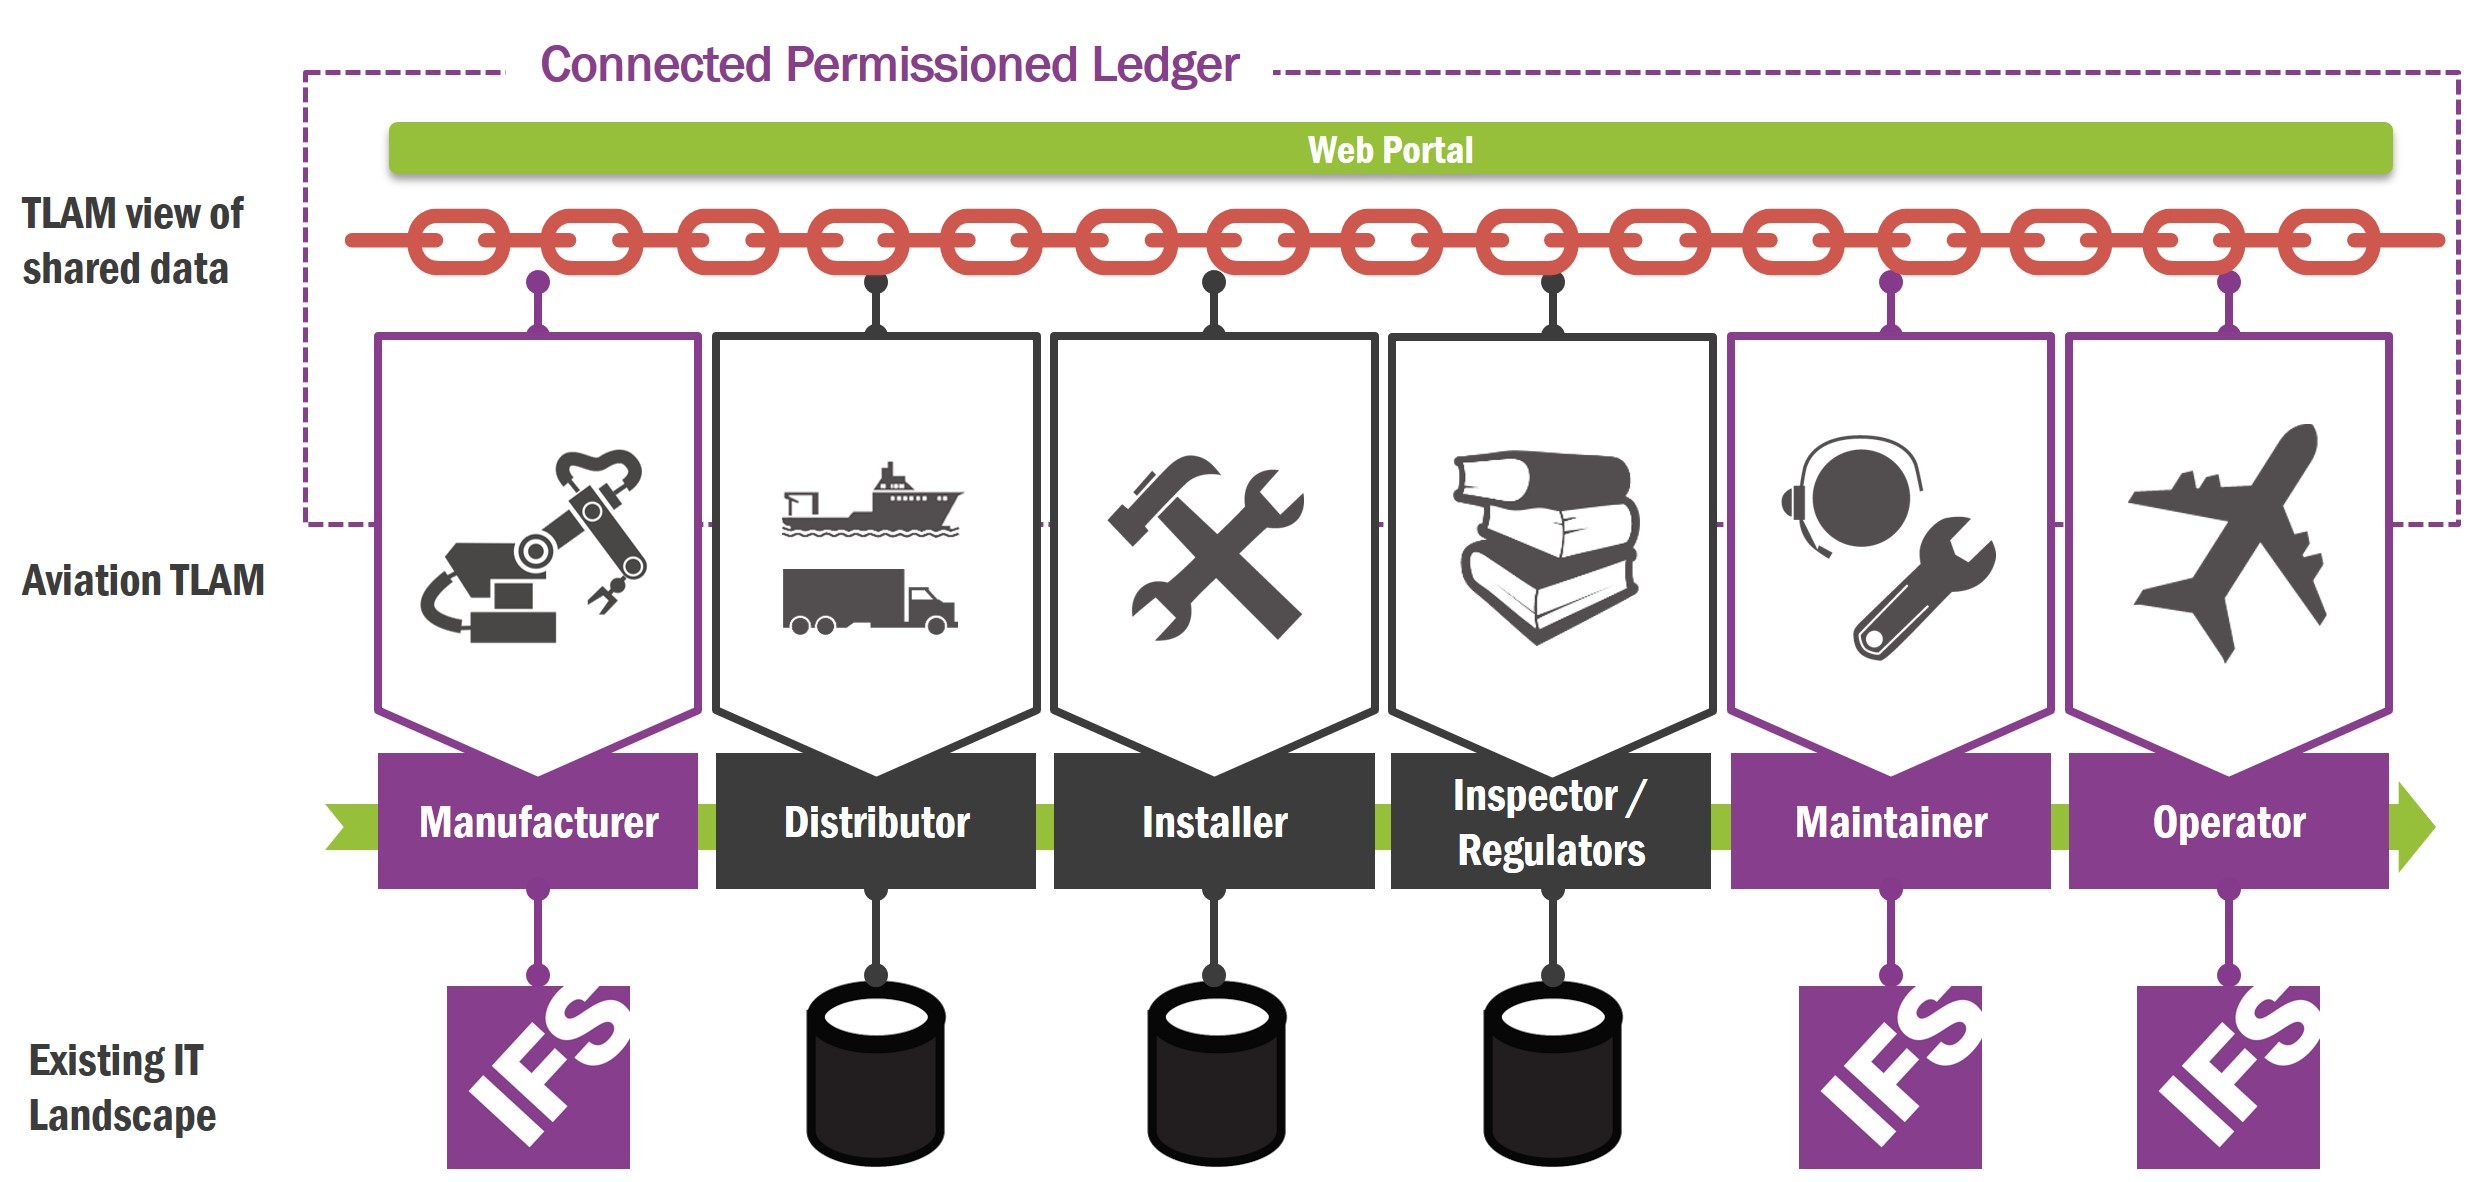 Connected Permission Ledger